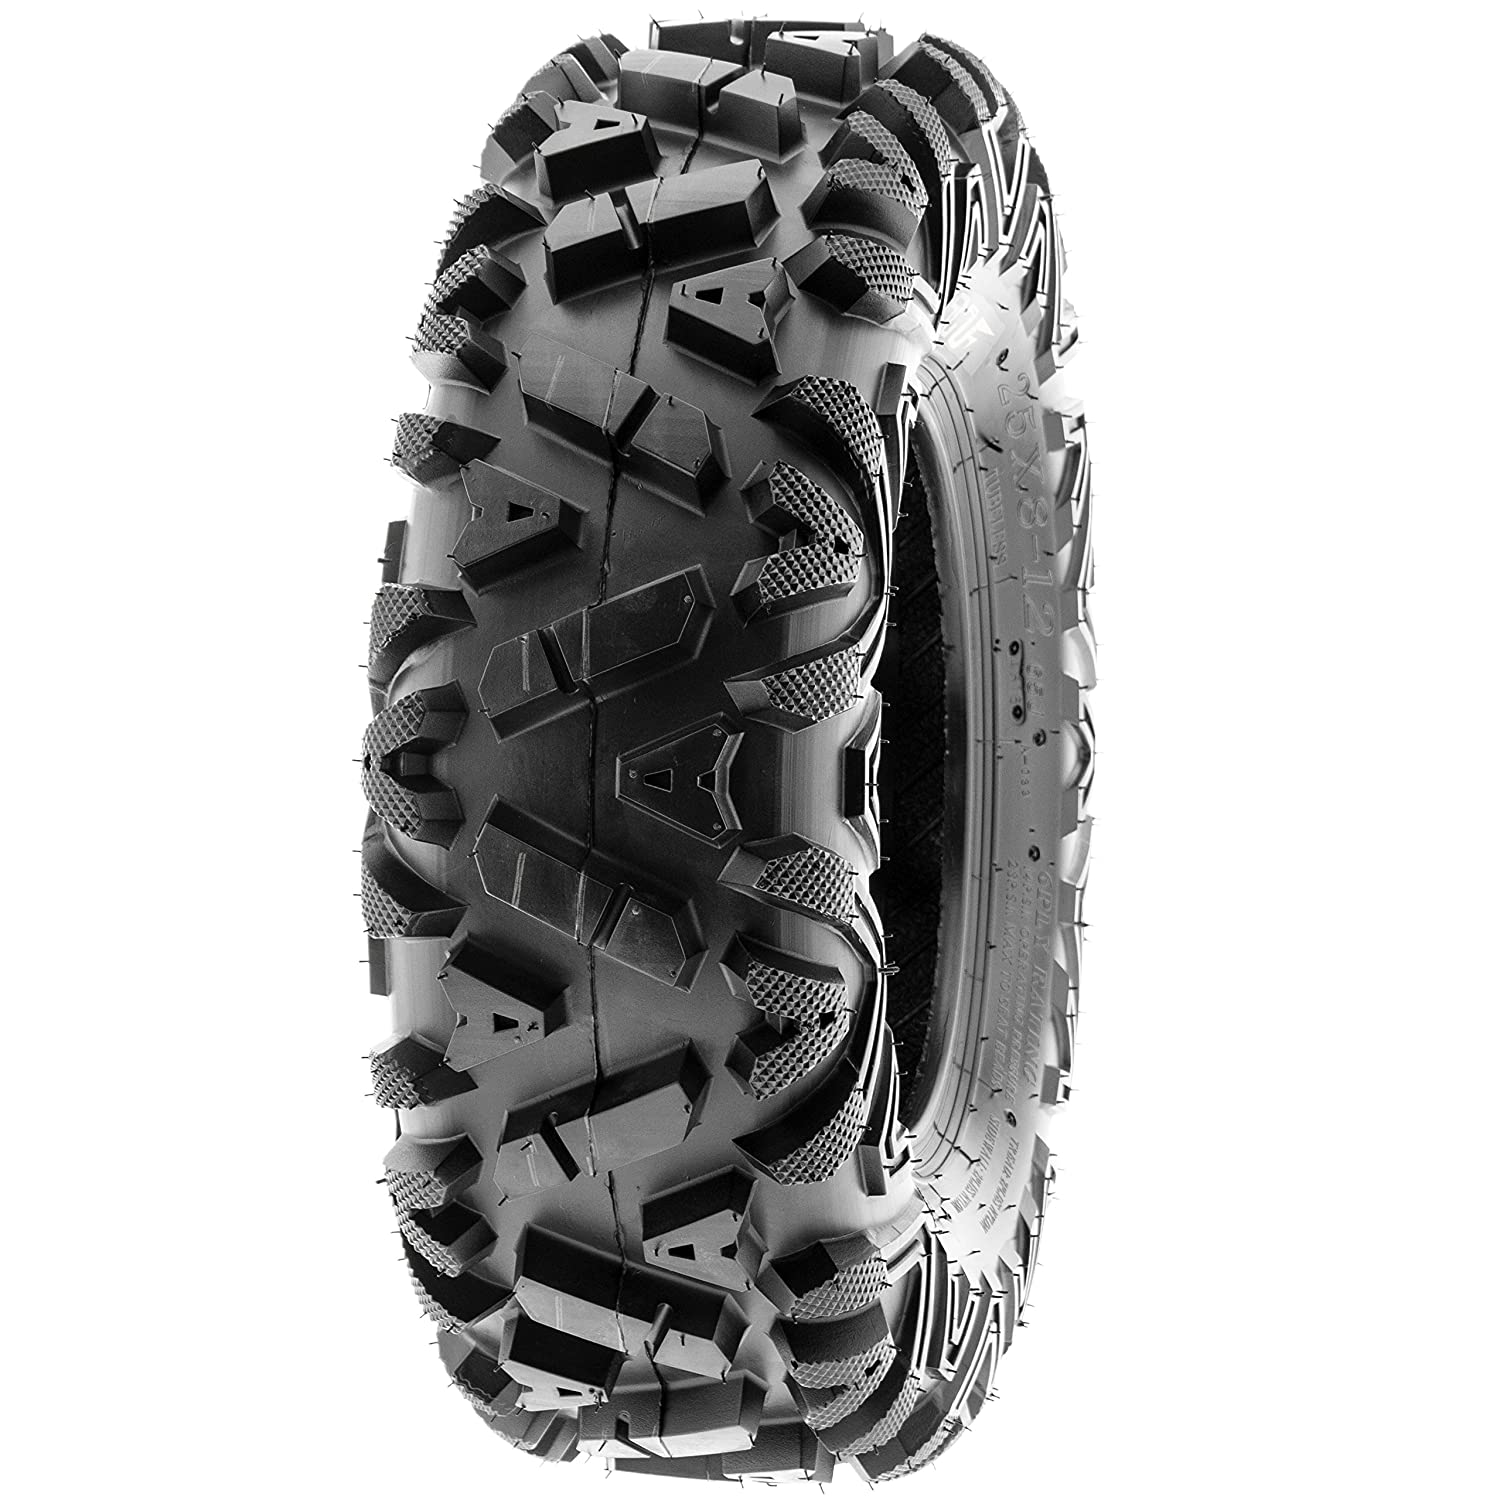 Tubeless A033 Set of 4 SunF Power.I 25x8-12 Front /& 25x11-10 Rear ATV UTV all-terrain Tires 6 PR